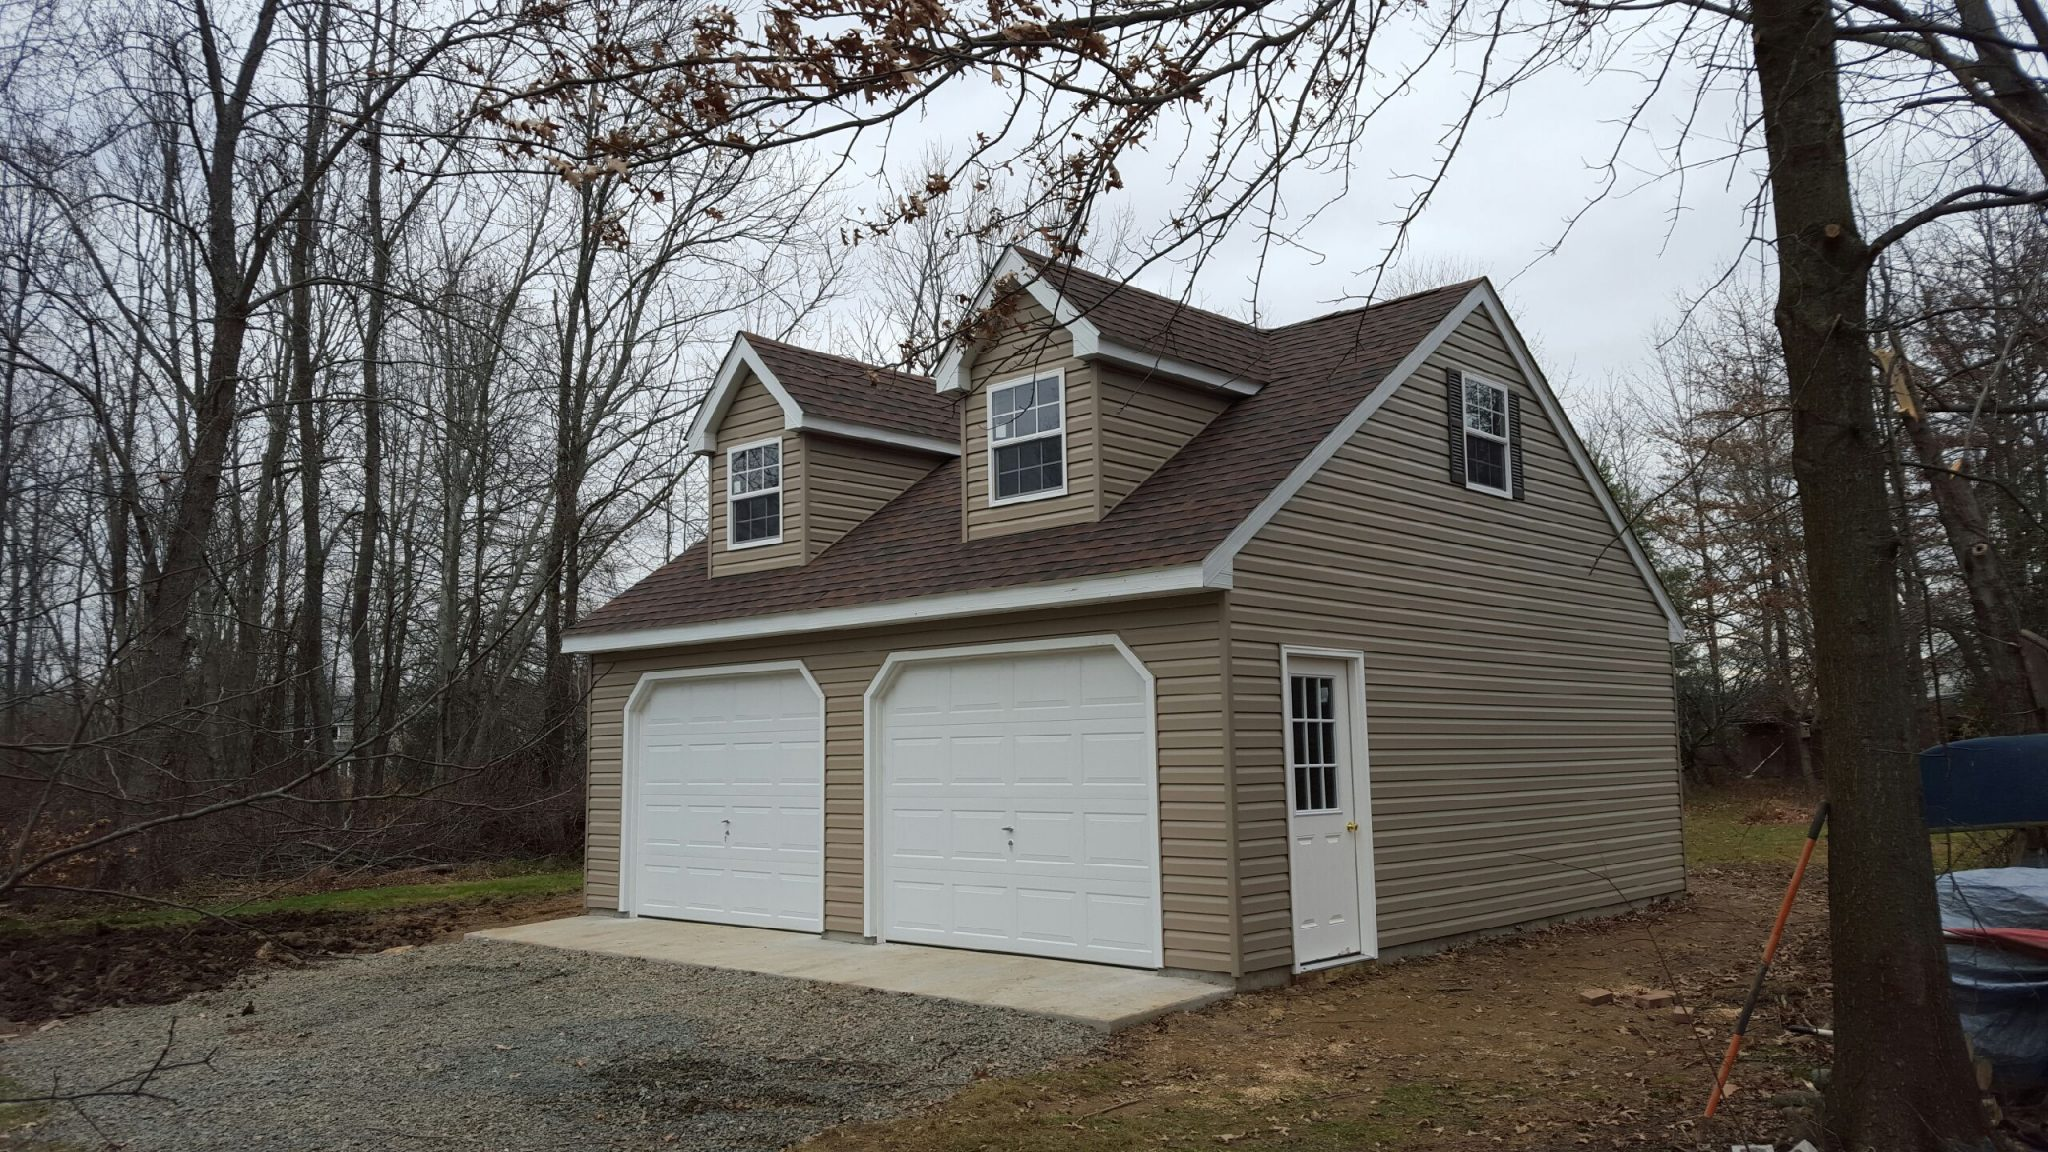 Amish Garages In Pa : Ideas specialized new home construction by amish builders